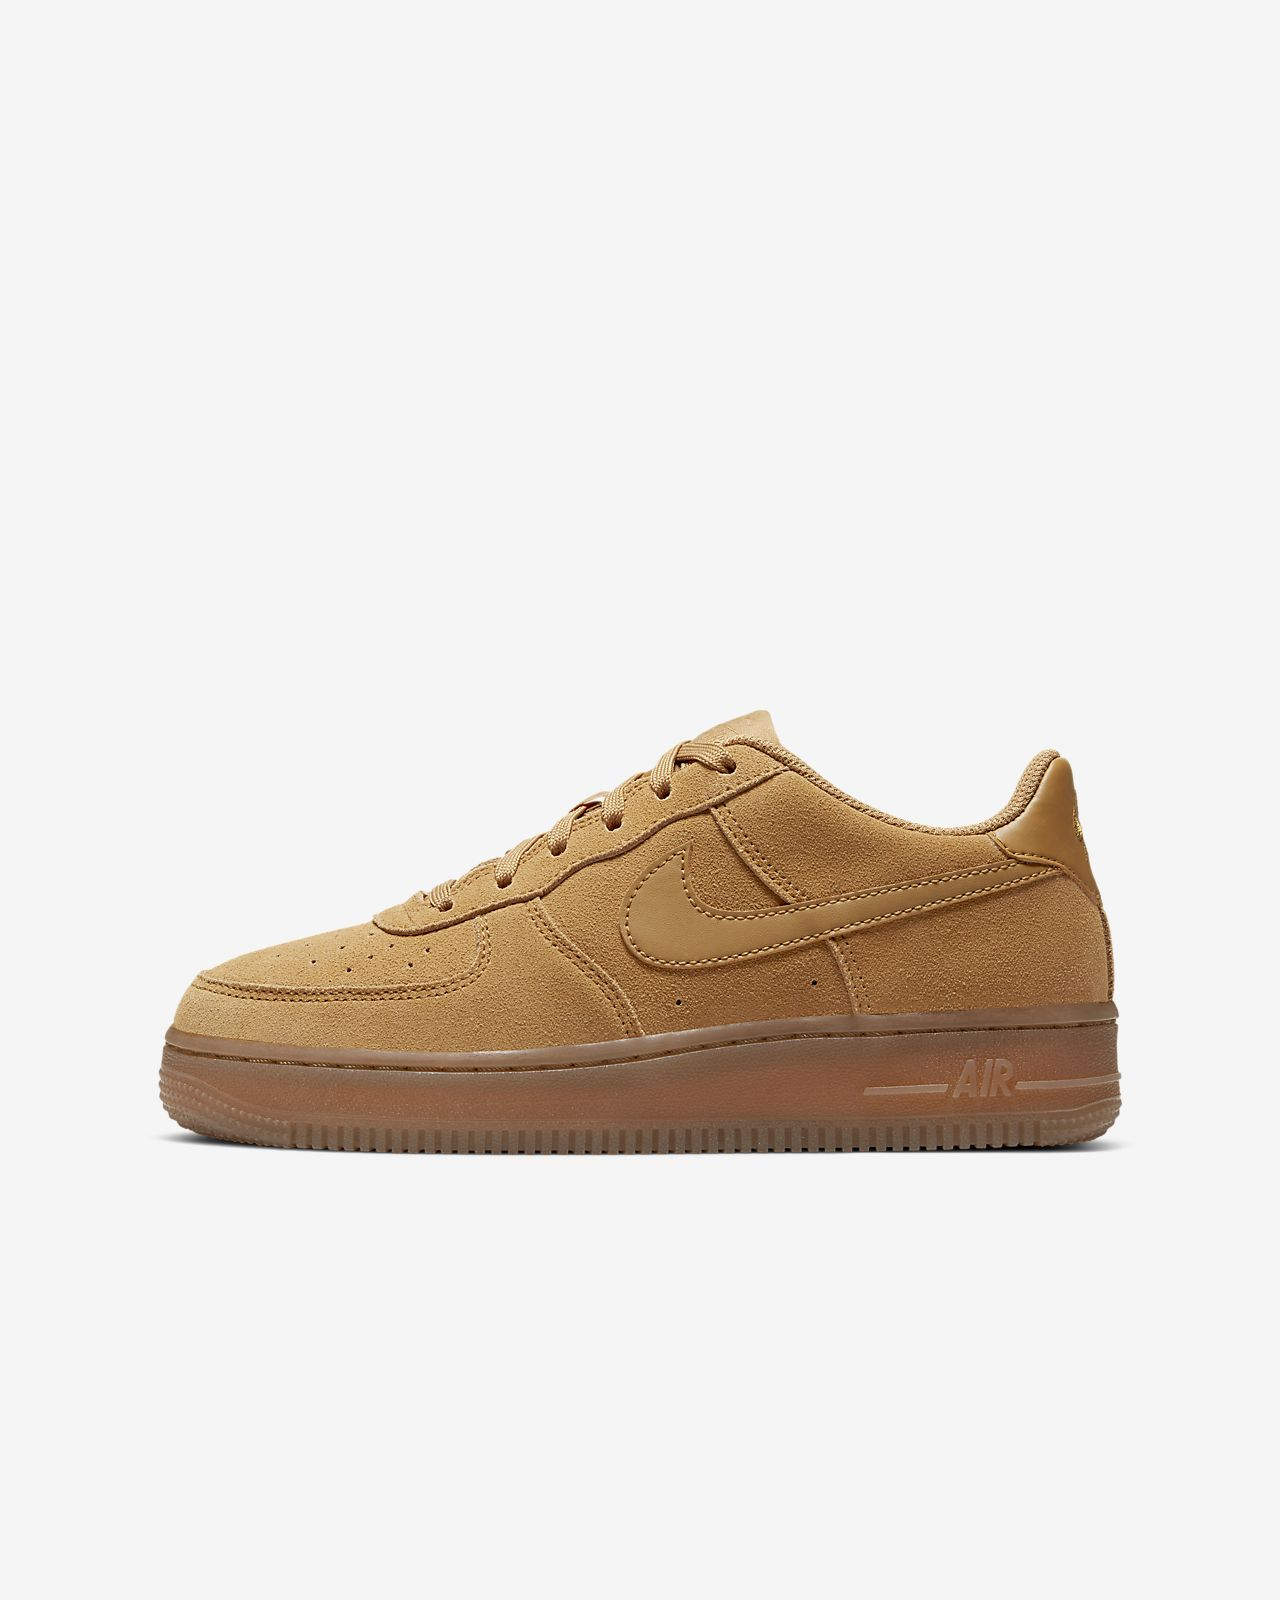 Nike Air Force 1 LV8 3 Older Kids' Shoe